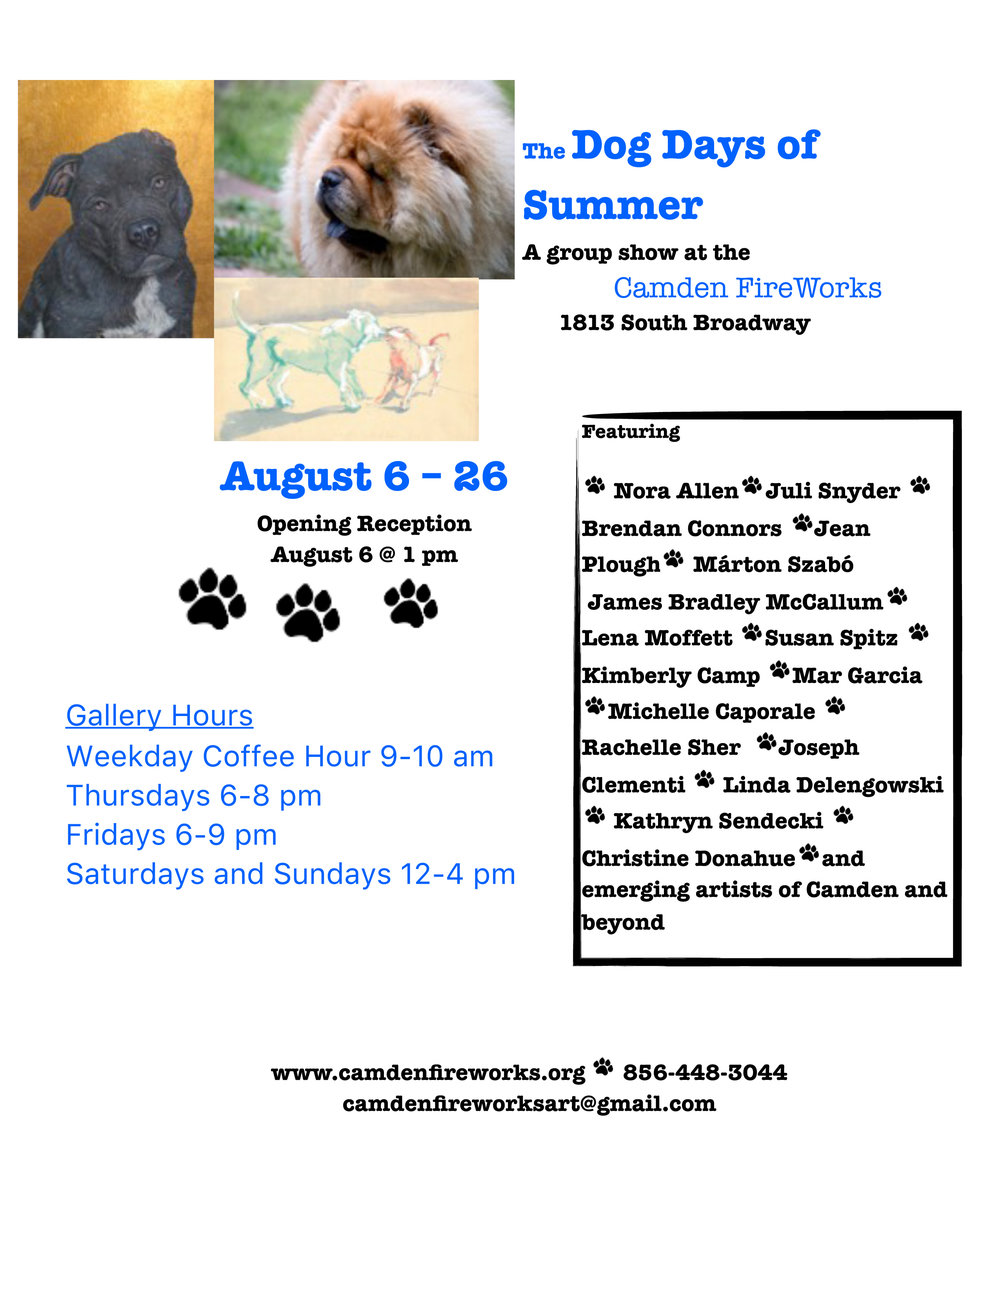 Dog Days of Summer Flyer.jpg